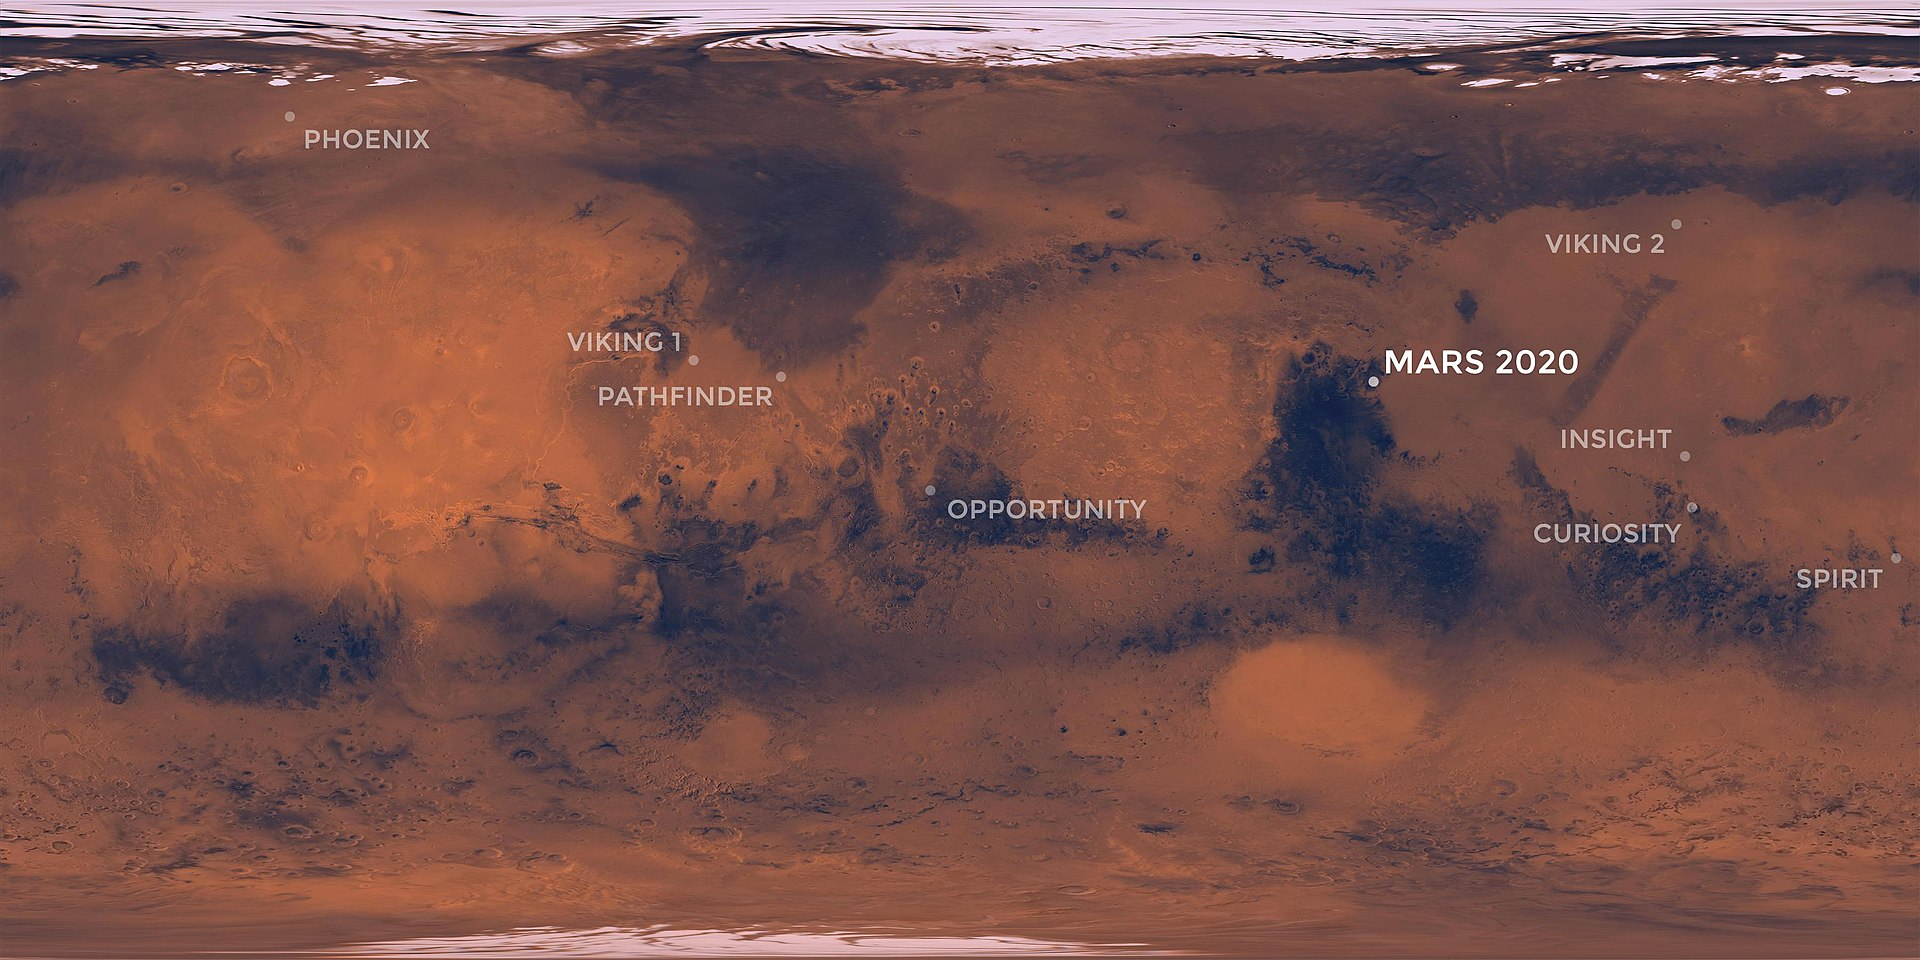 rover-mars-site-atterrissage